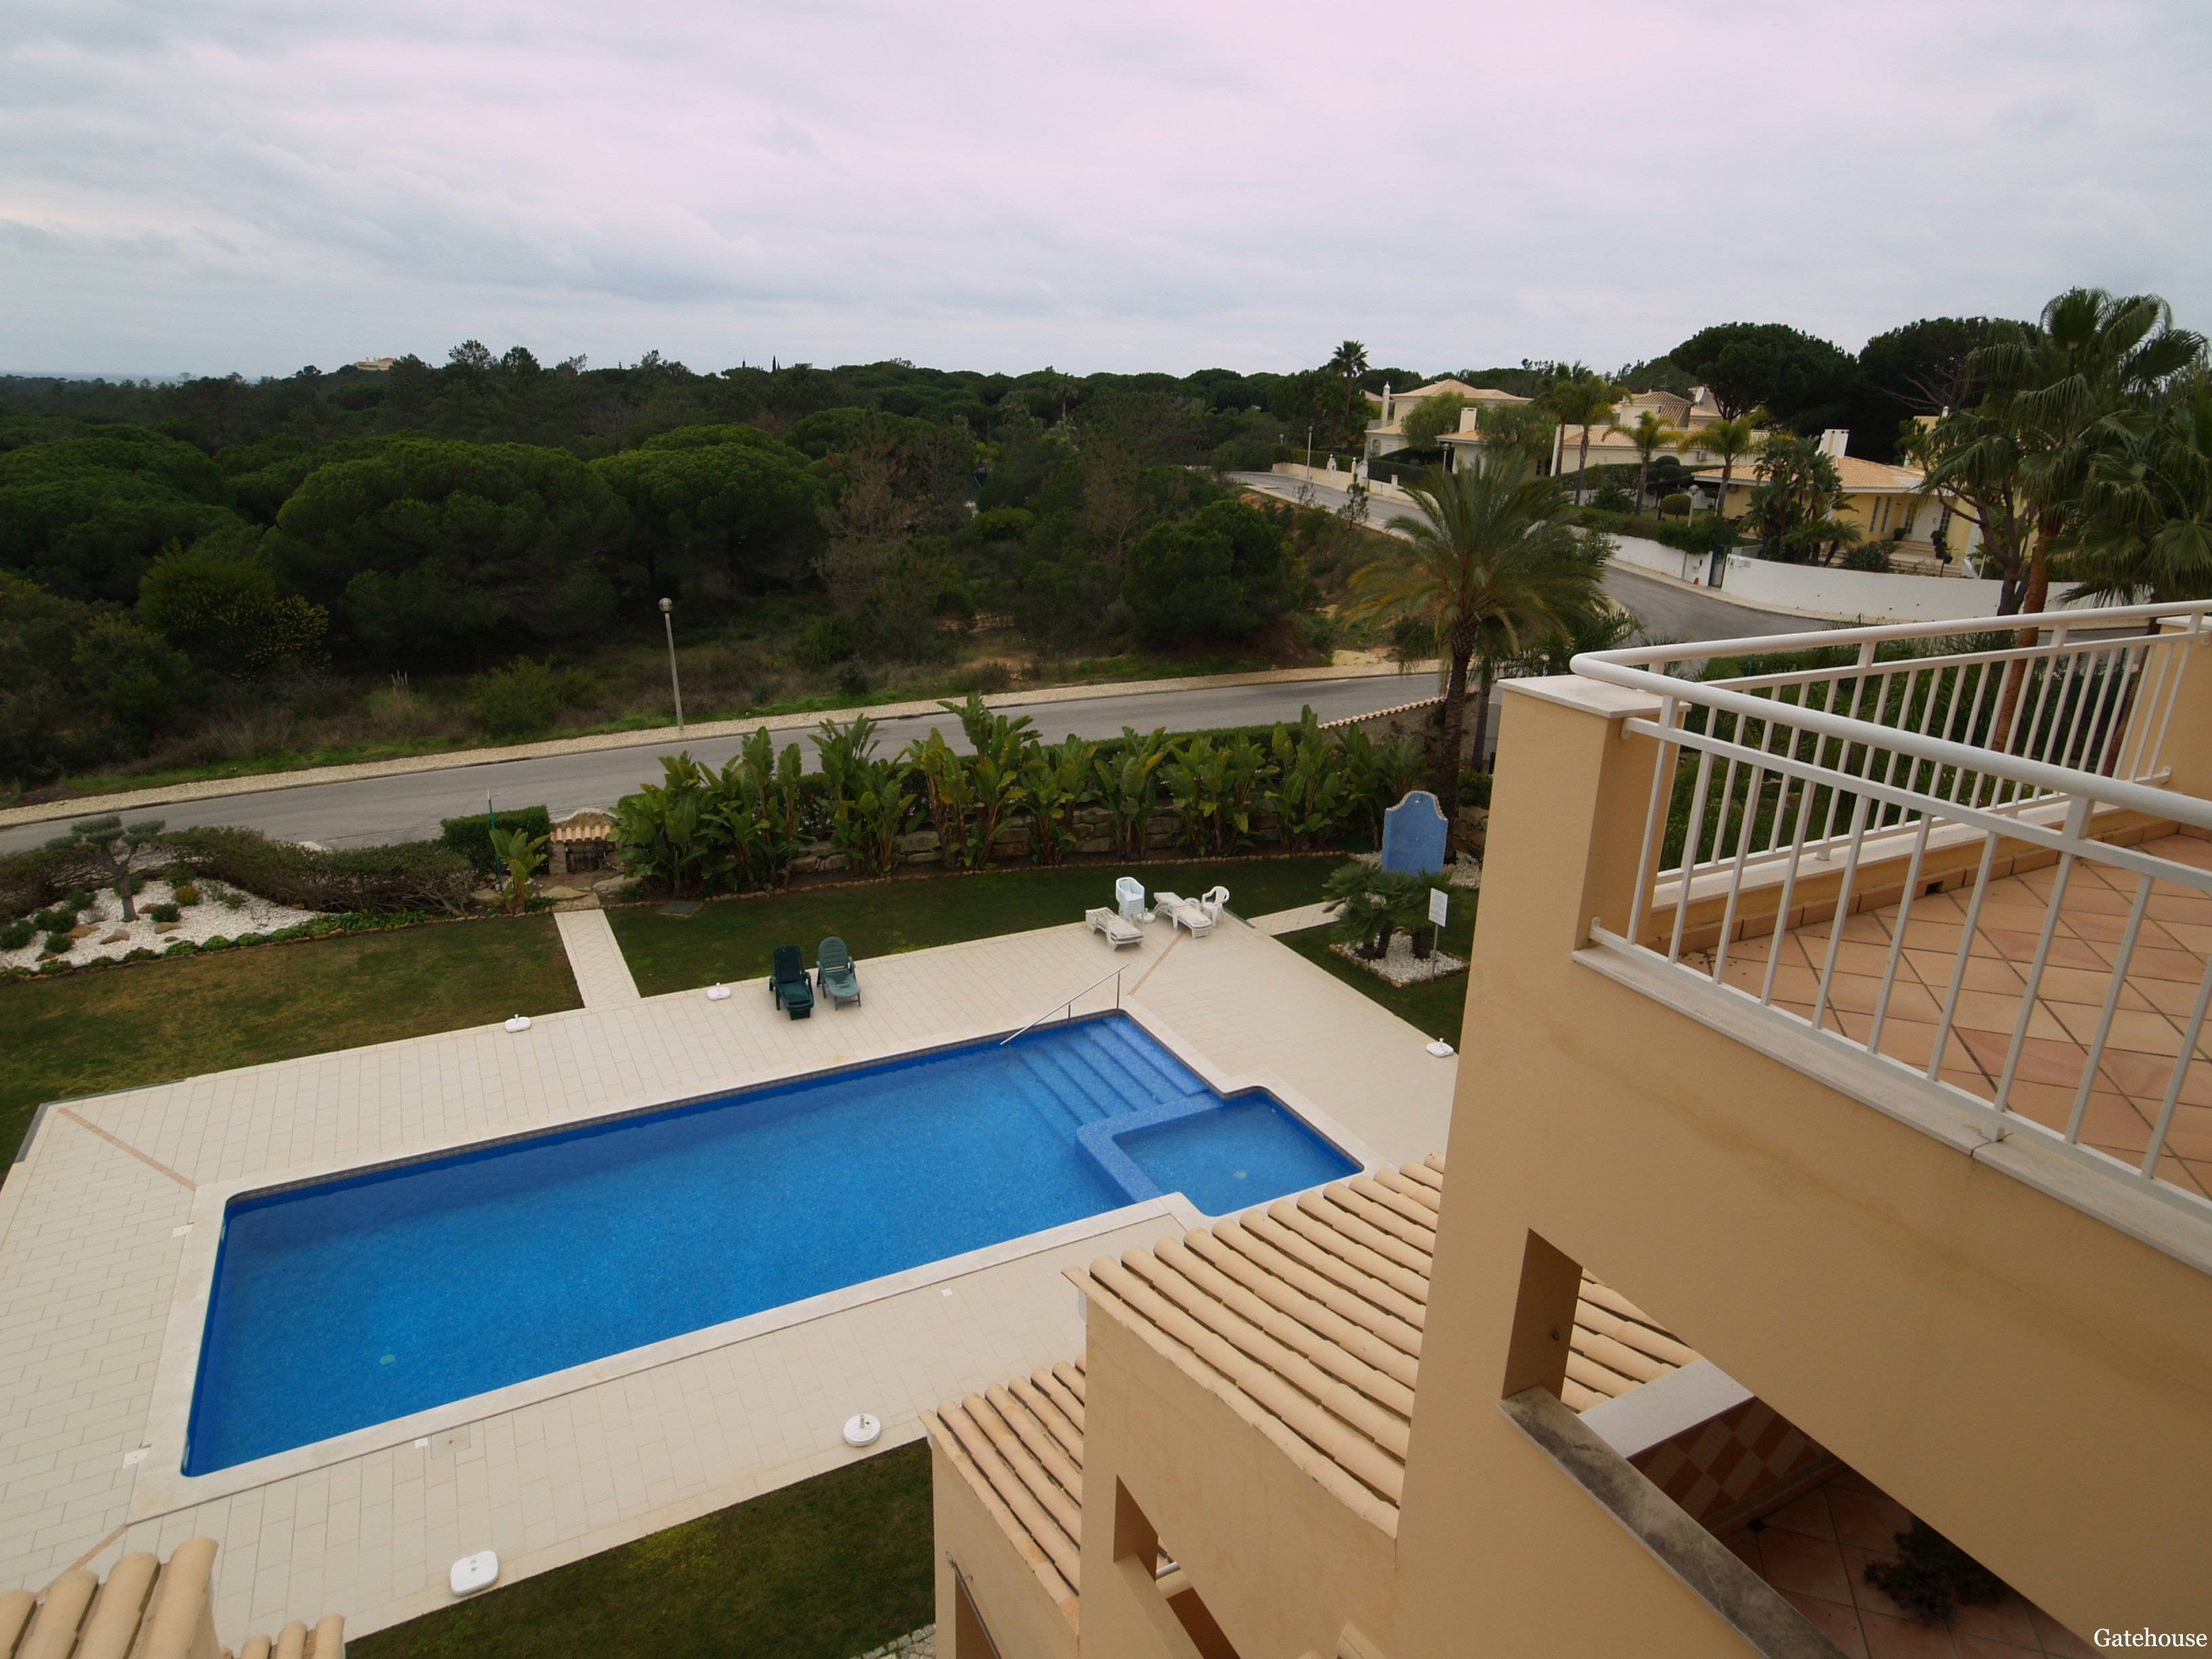 2 Beds Apartment For Sale Gatehouse International Portugal